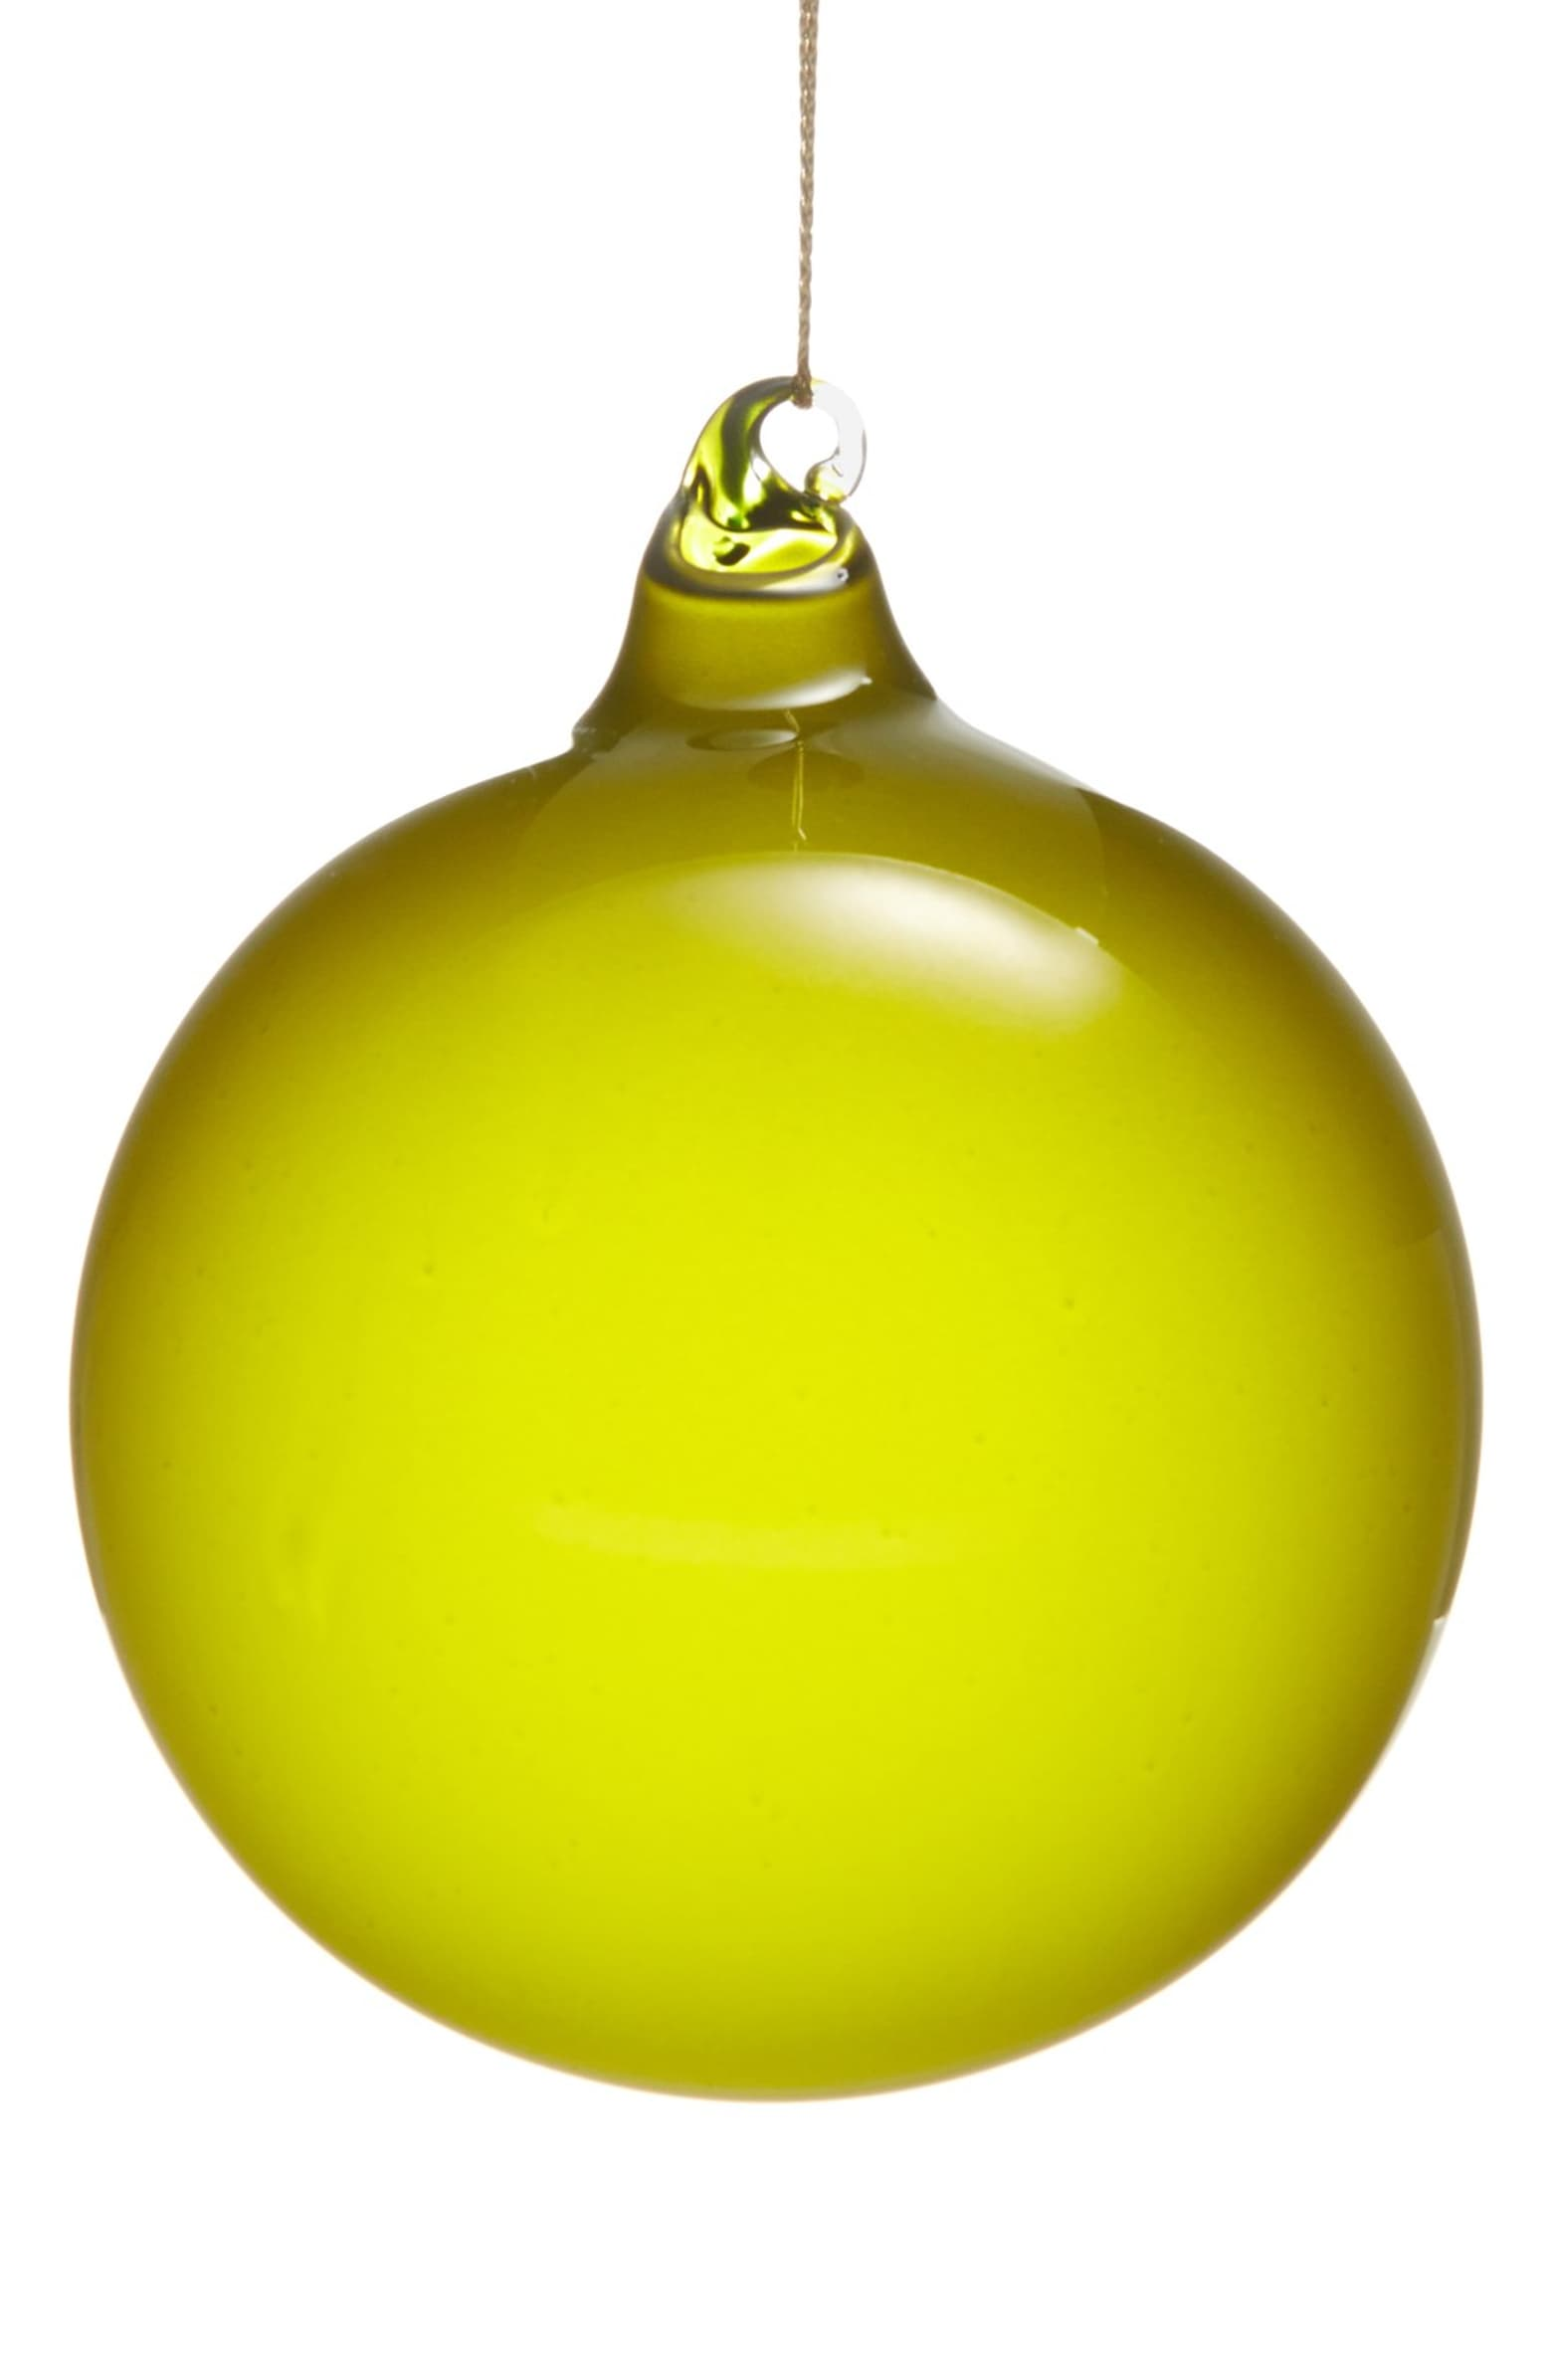 BUBBLEGUM GLASS ORNAMENTS - LIME (100mm x3) - Made by McNamara